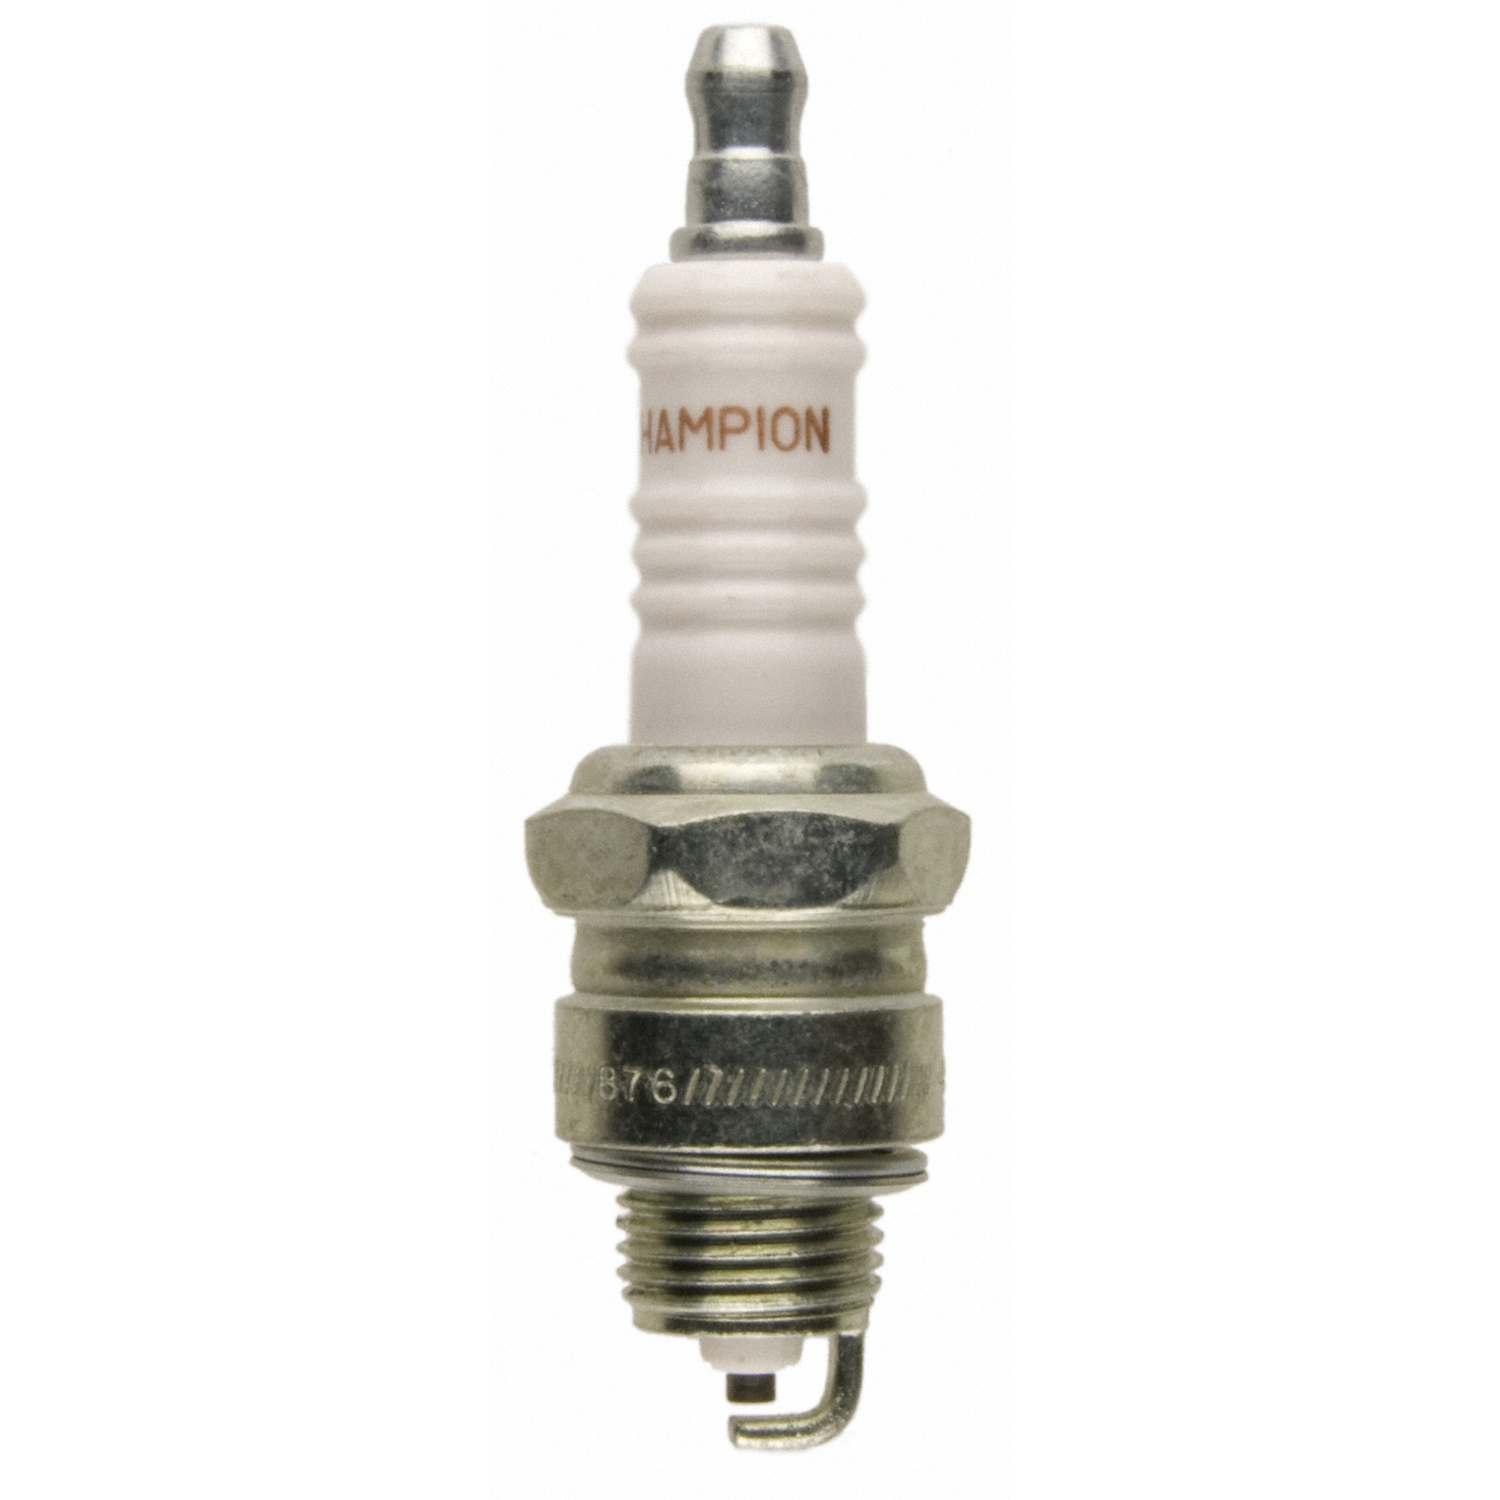 CHAMPION SPARK PLUGS - Copper Plus Spark Plug - CHA 63